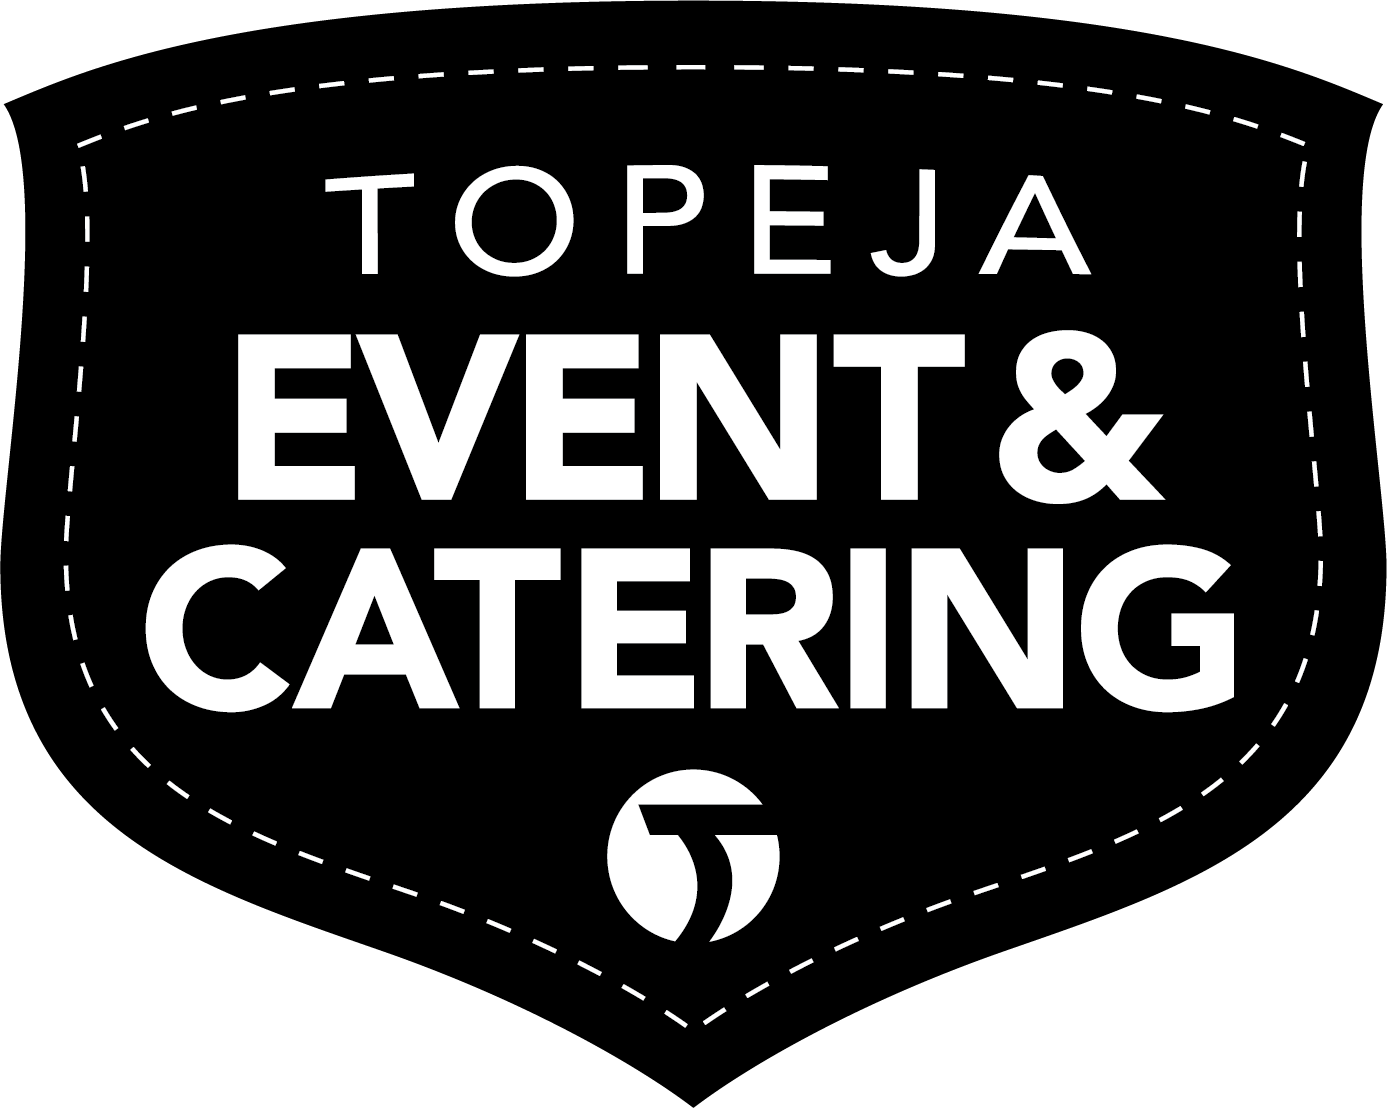 Topeja Event & catering